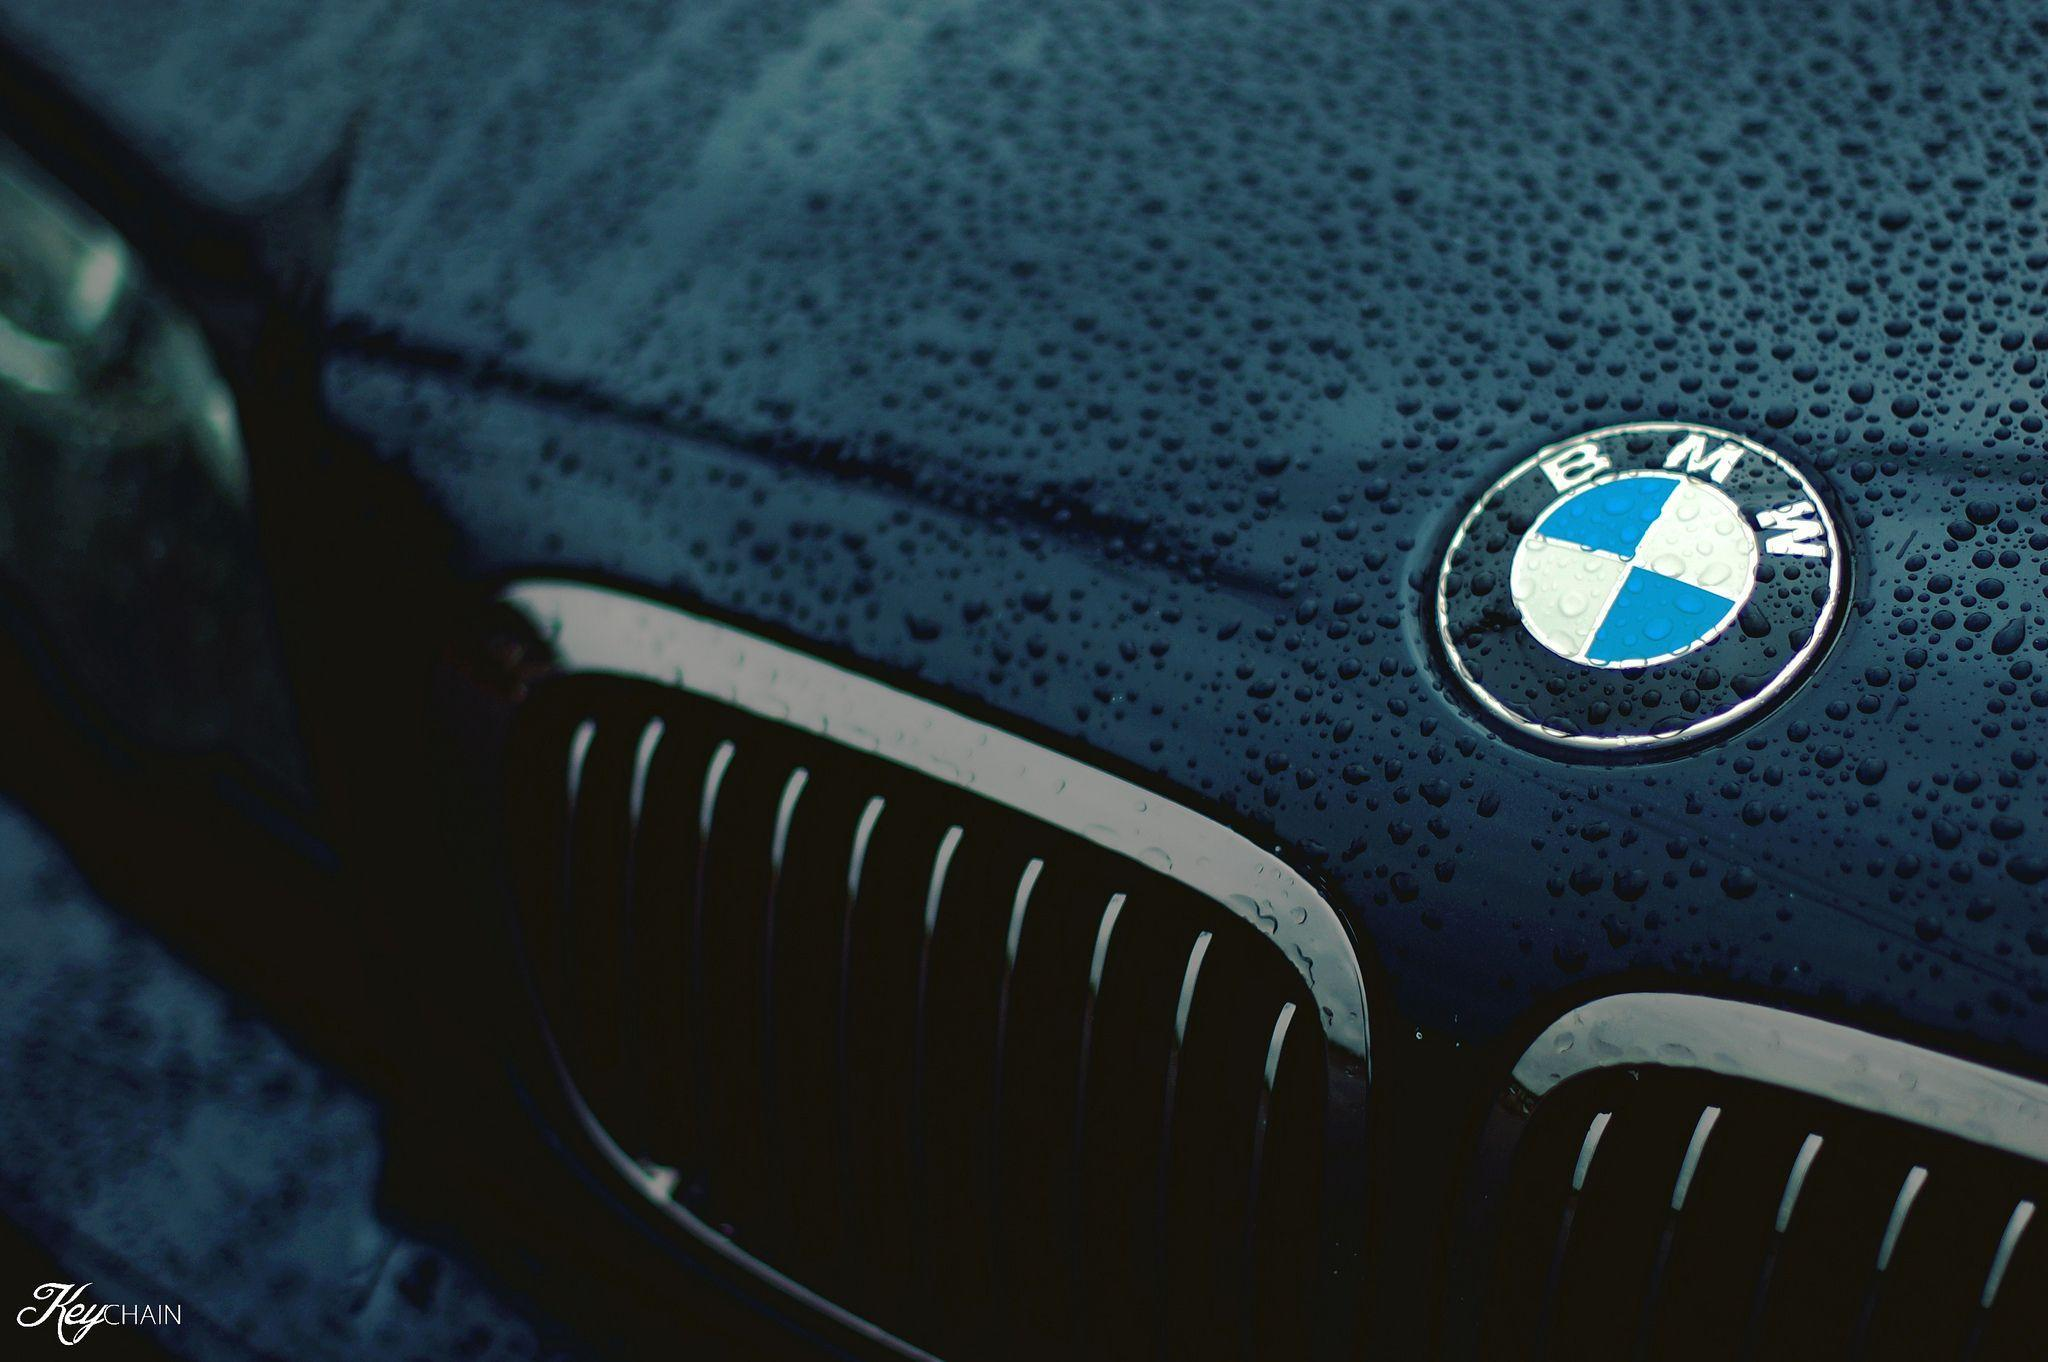 HD Bmw Logo Wallpaper, Live BMW Logo Wallpapers (ON428+ WP)